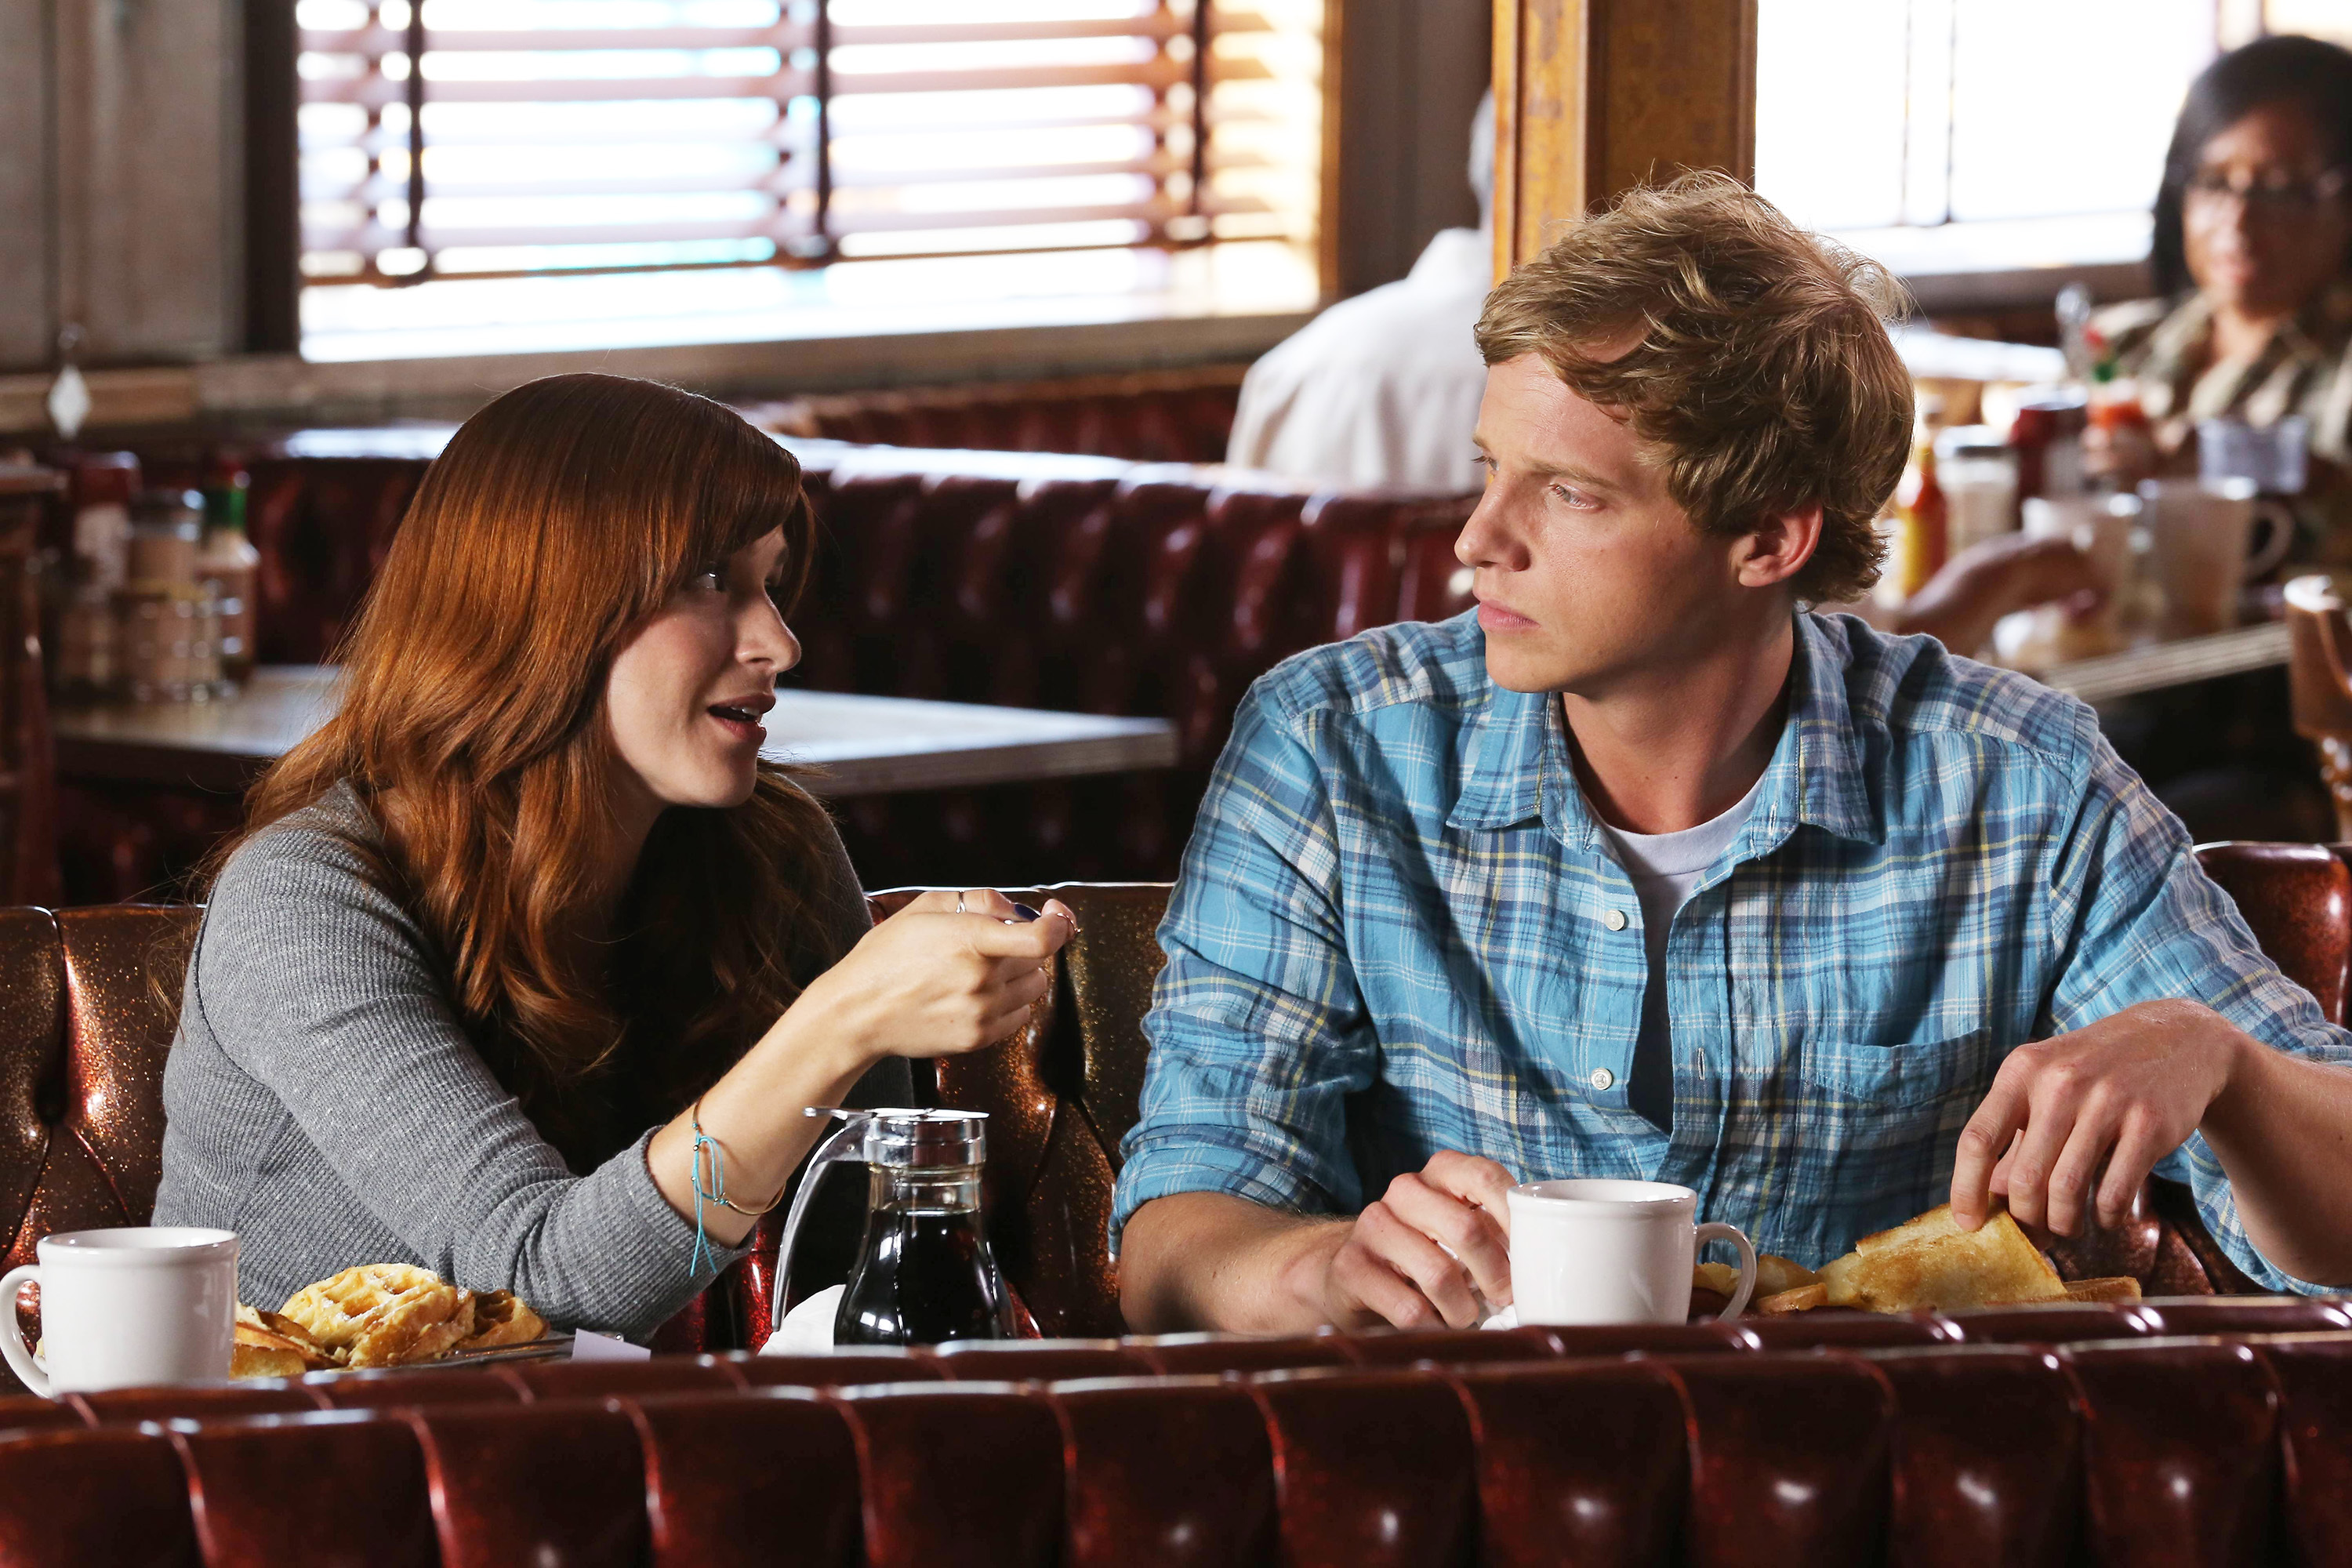 (L-R) Aya Cash as Gretchen Cutler, Chris Geere as Jimmy Shive-Overly -- CR: Byron Cohen/FX